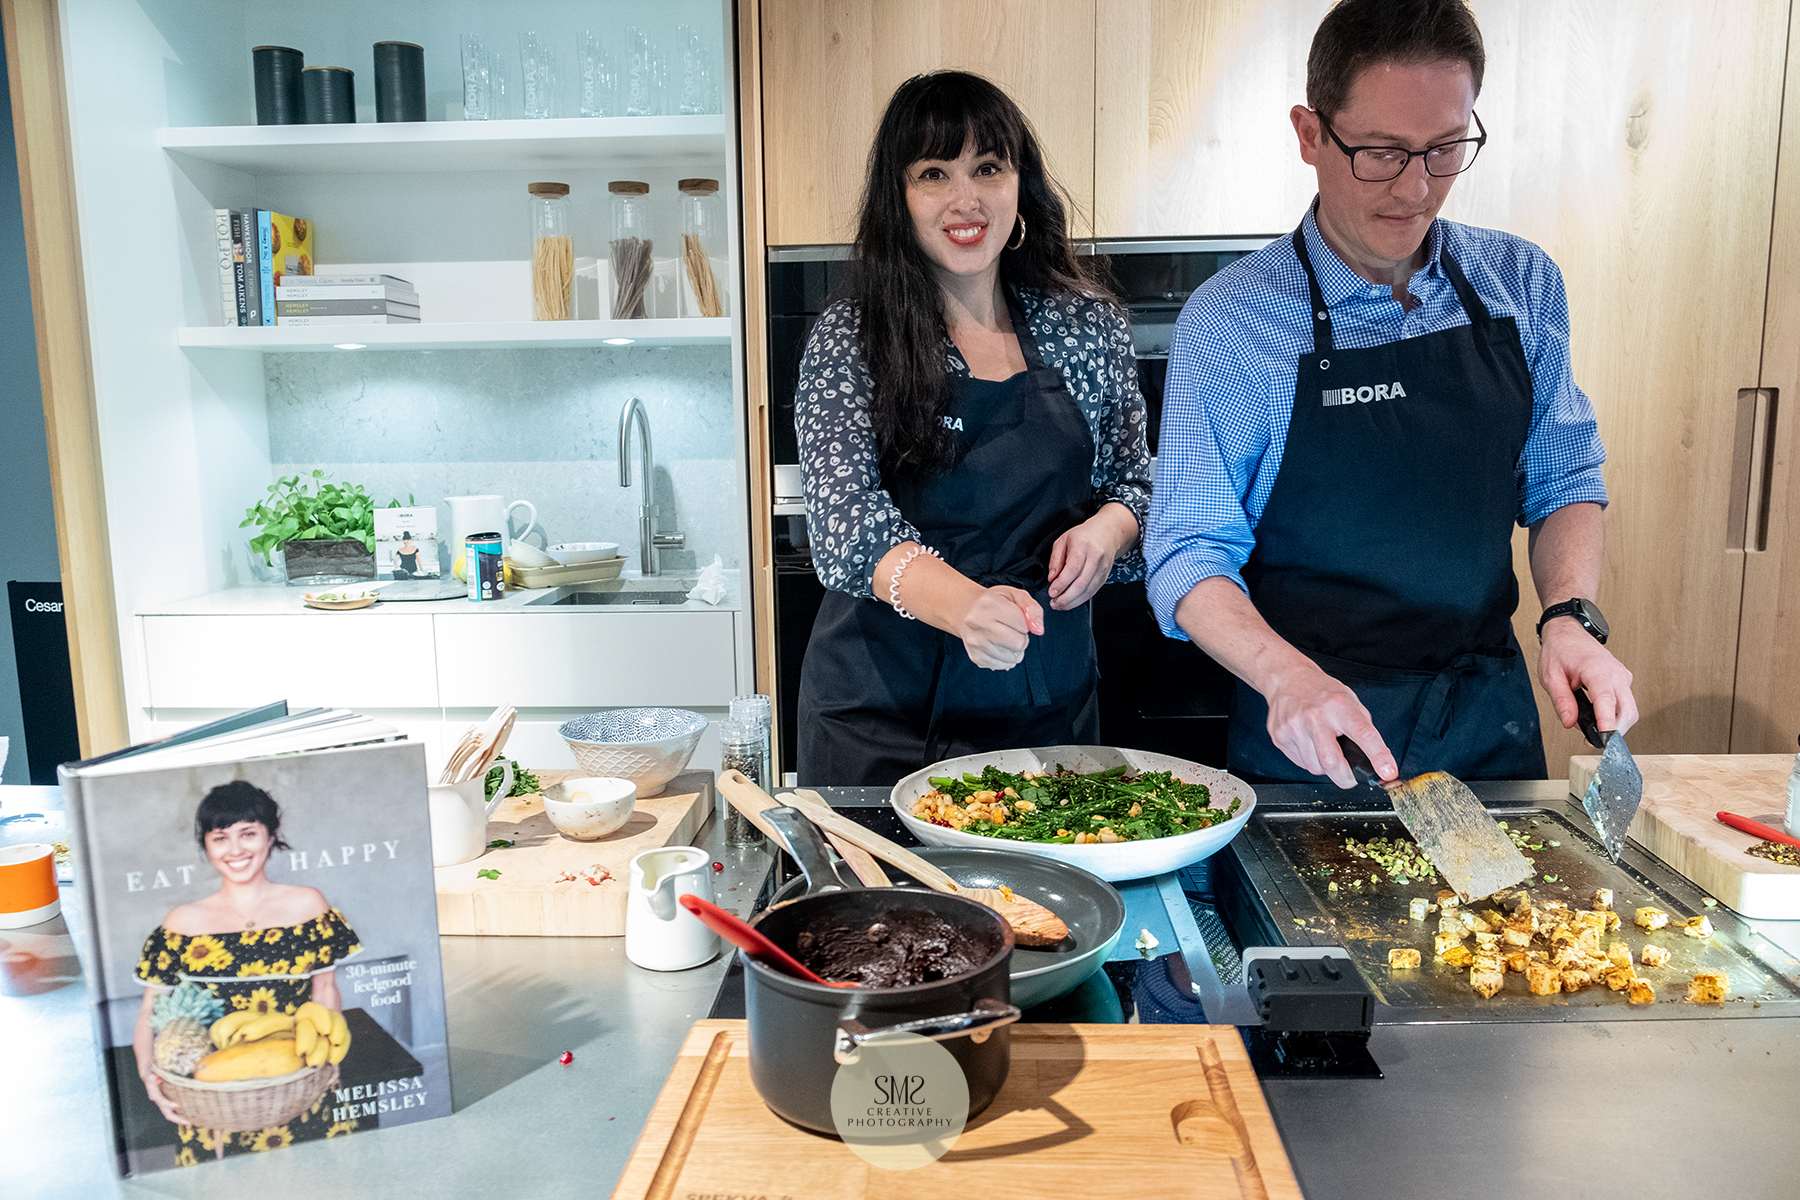 'Espresso Design' cookery demonstration by food guru Melissa Hemsley for Bora kitchen appliances